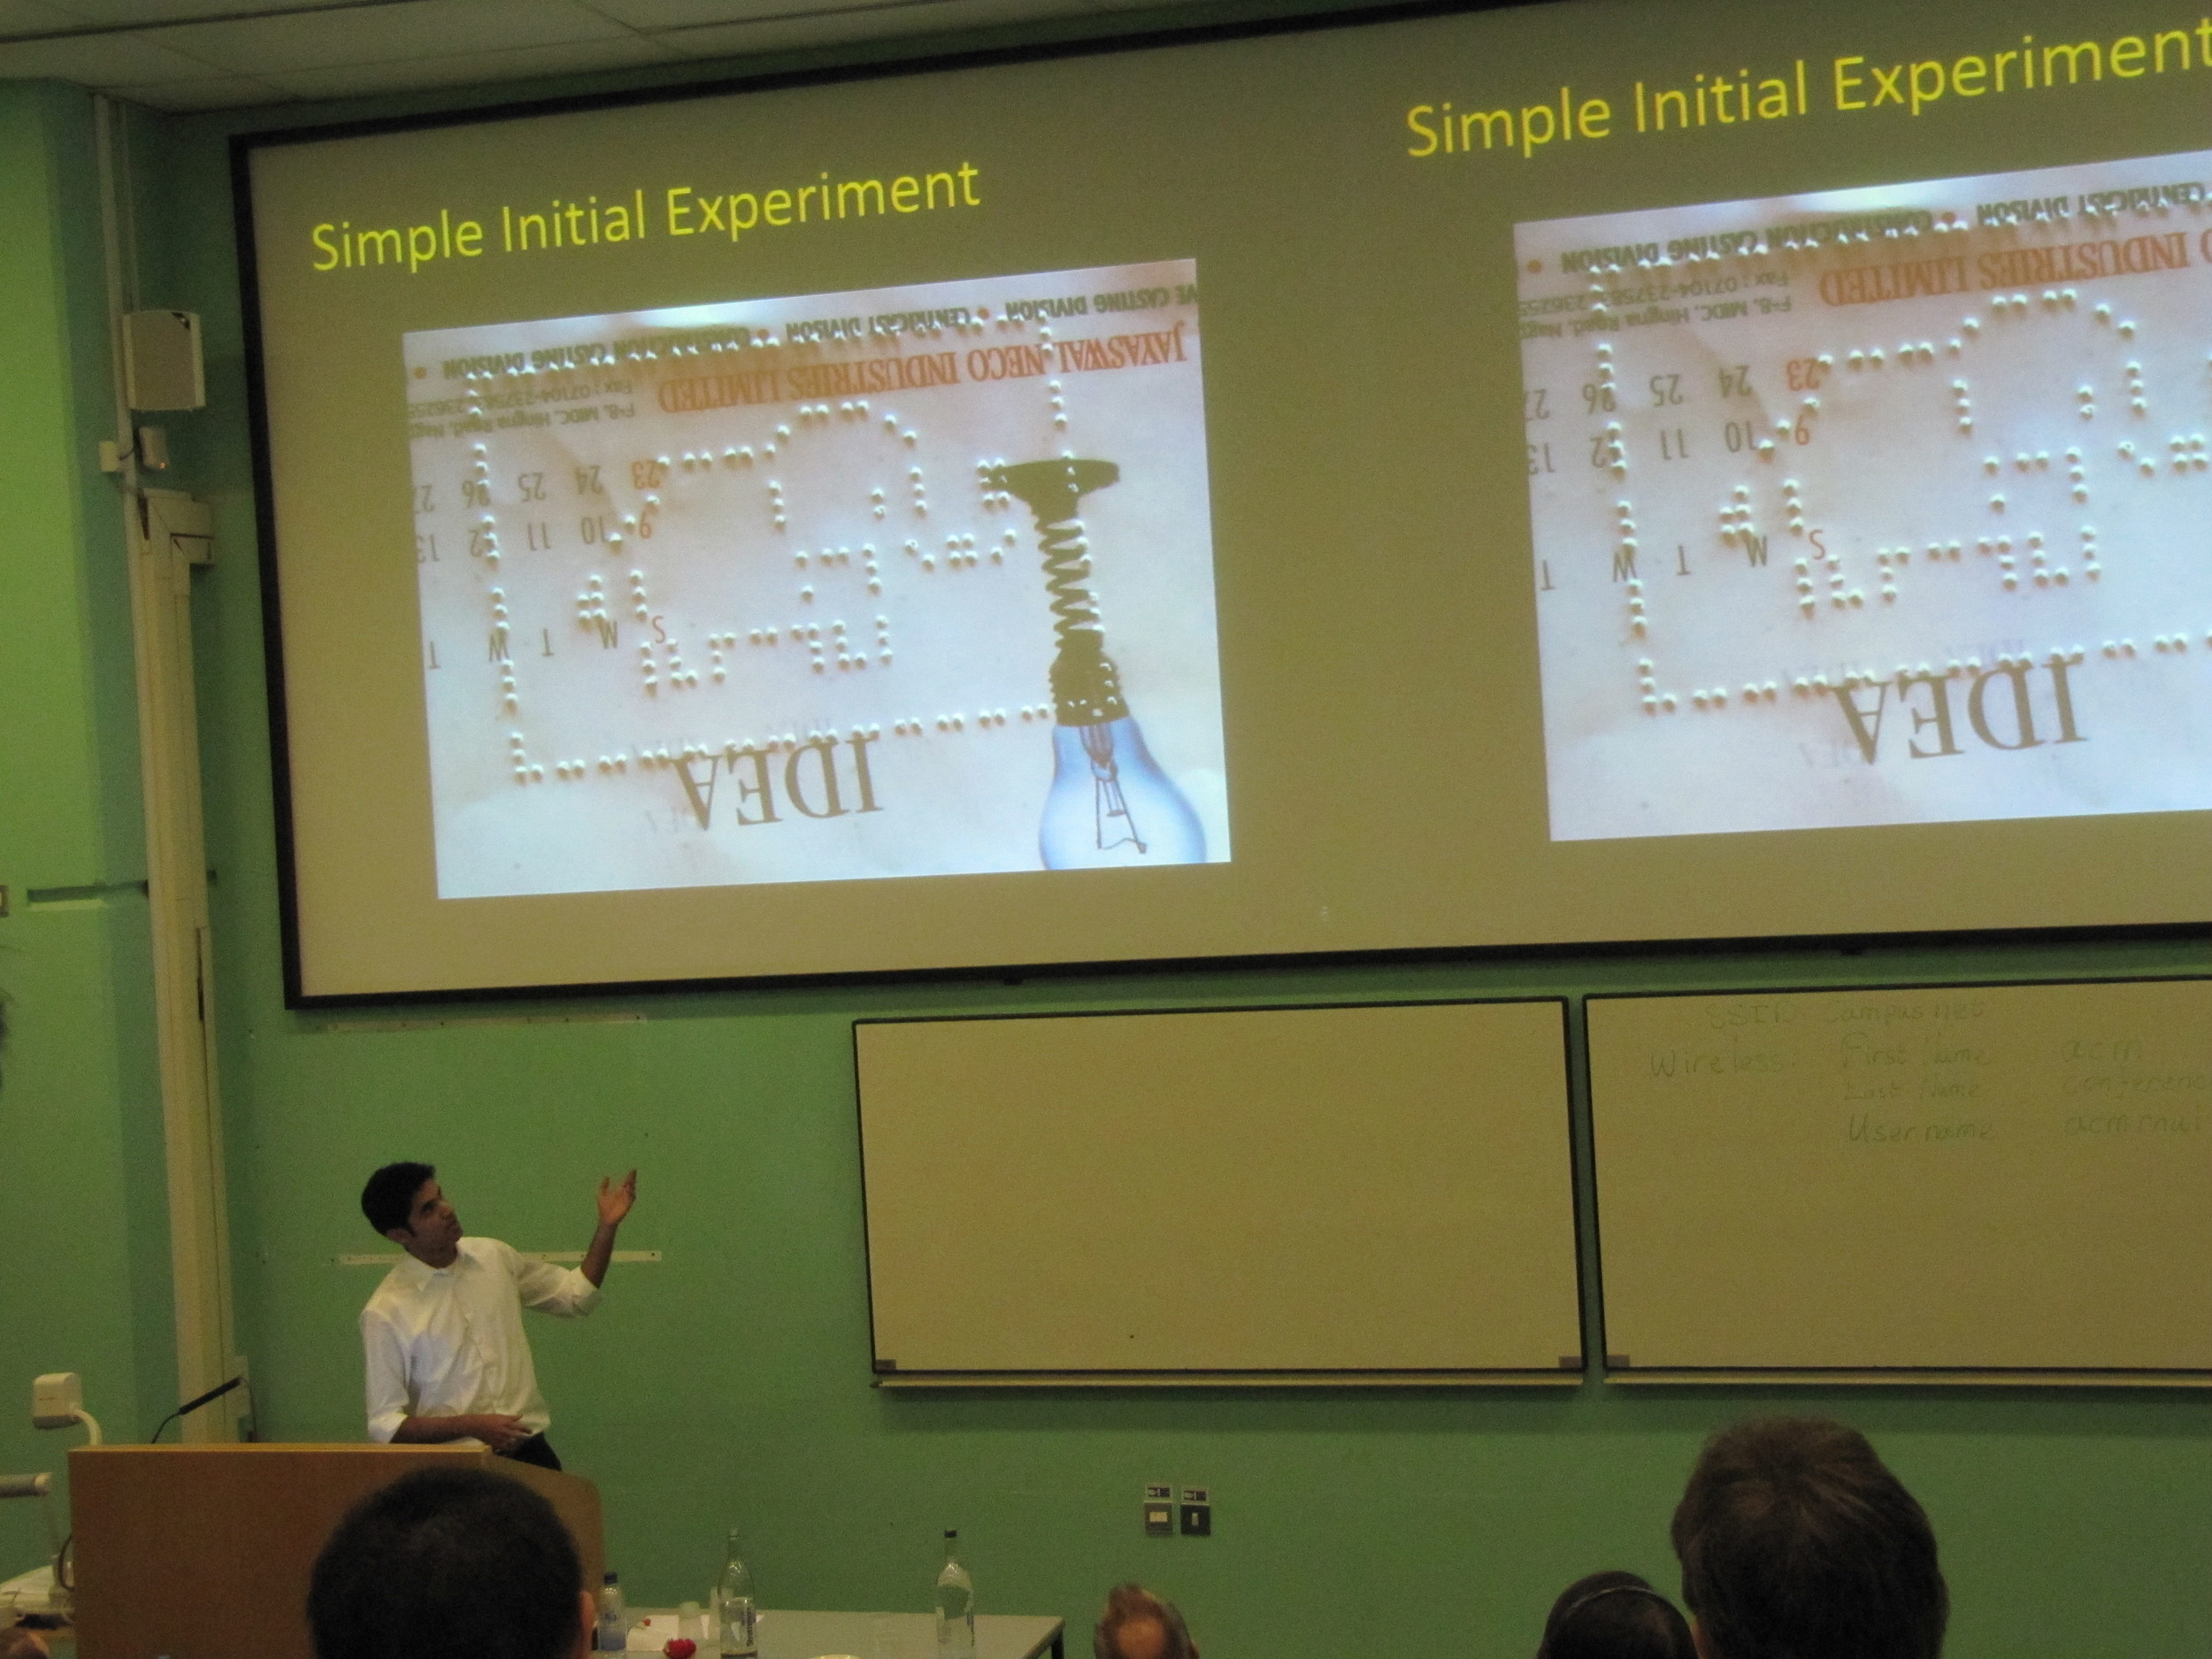 Presenting our work at the ACM DEV 2010 conference at the University of London, UK.